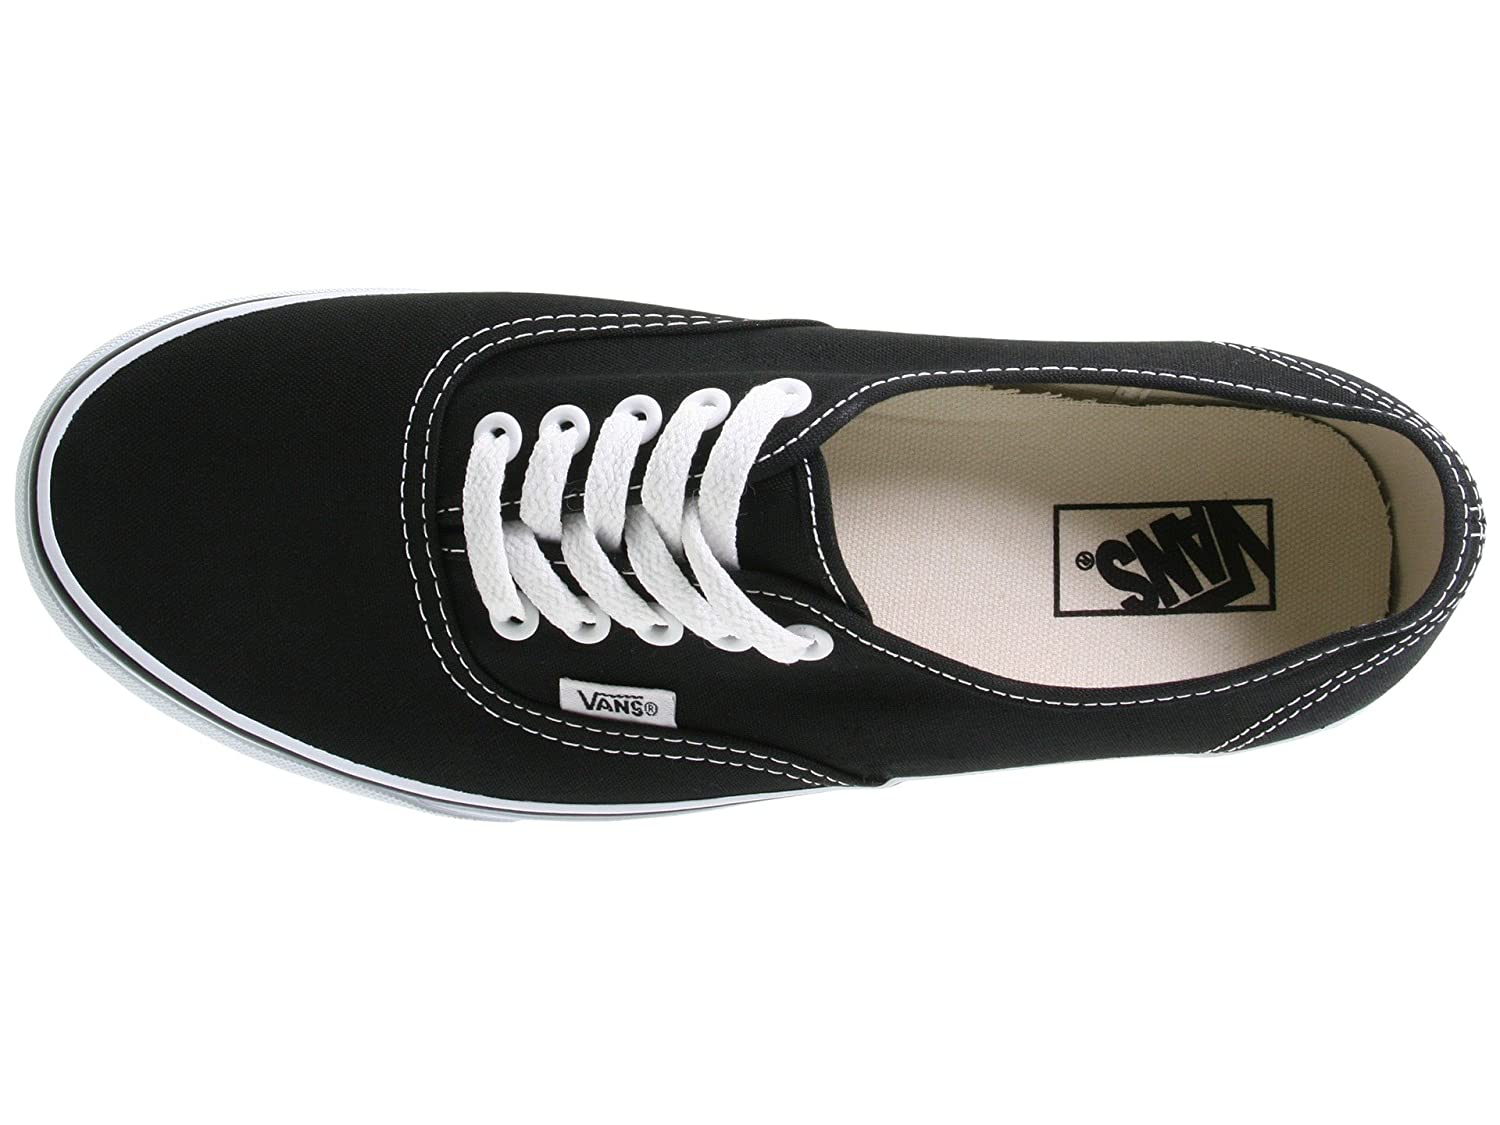 Vans AUTHENTIC, Unisex Unisex AUTHENTIC, Erwachsene Sneakers schwarz./Weiß 4990b2